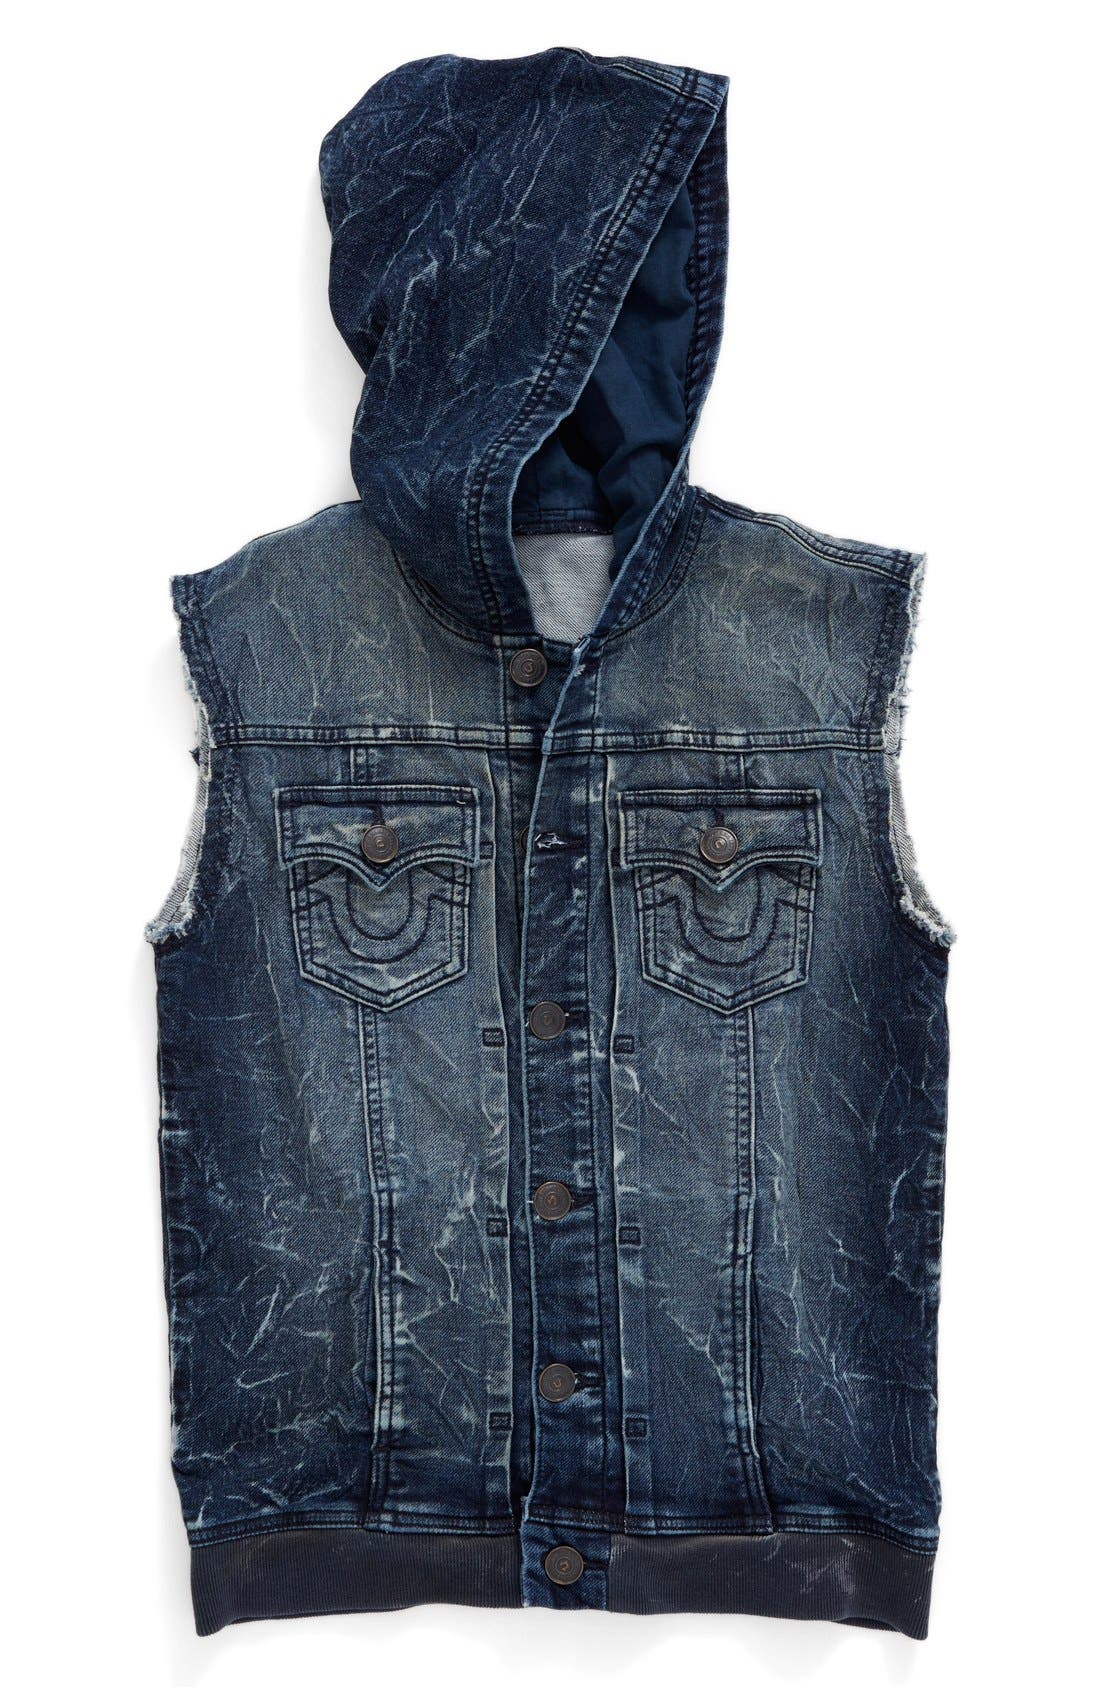 Alternate Image 1 Selected - True Religion Brand Jeans 'Dylan' French Terry Hooded Vest (Toddler Boys, Little Boys & Big Boys)